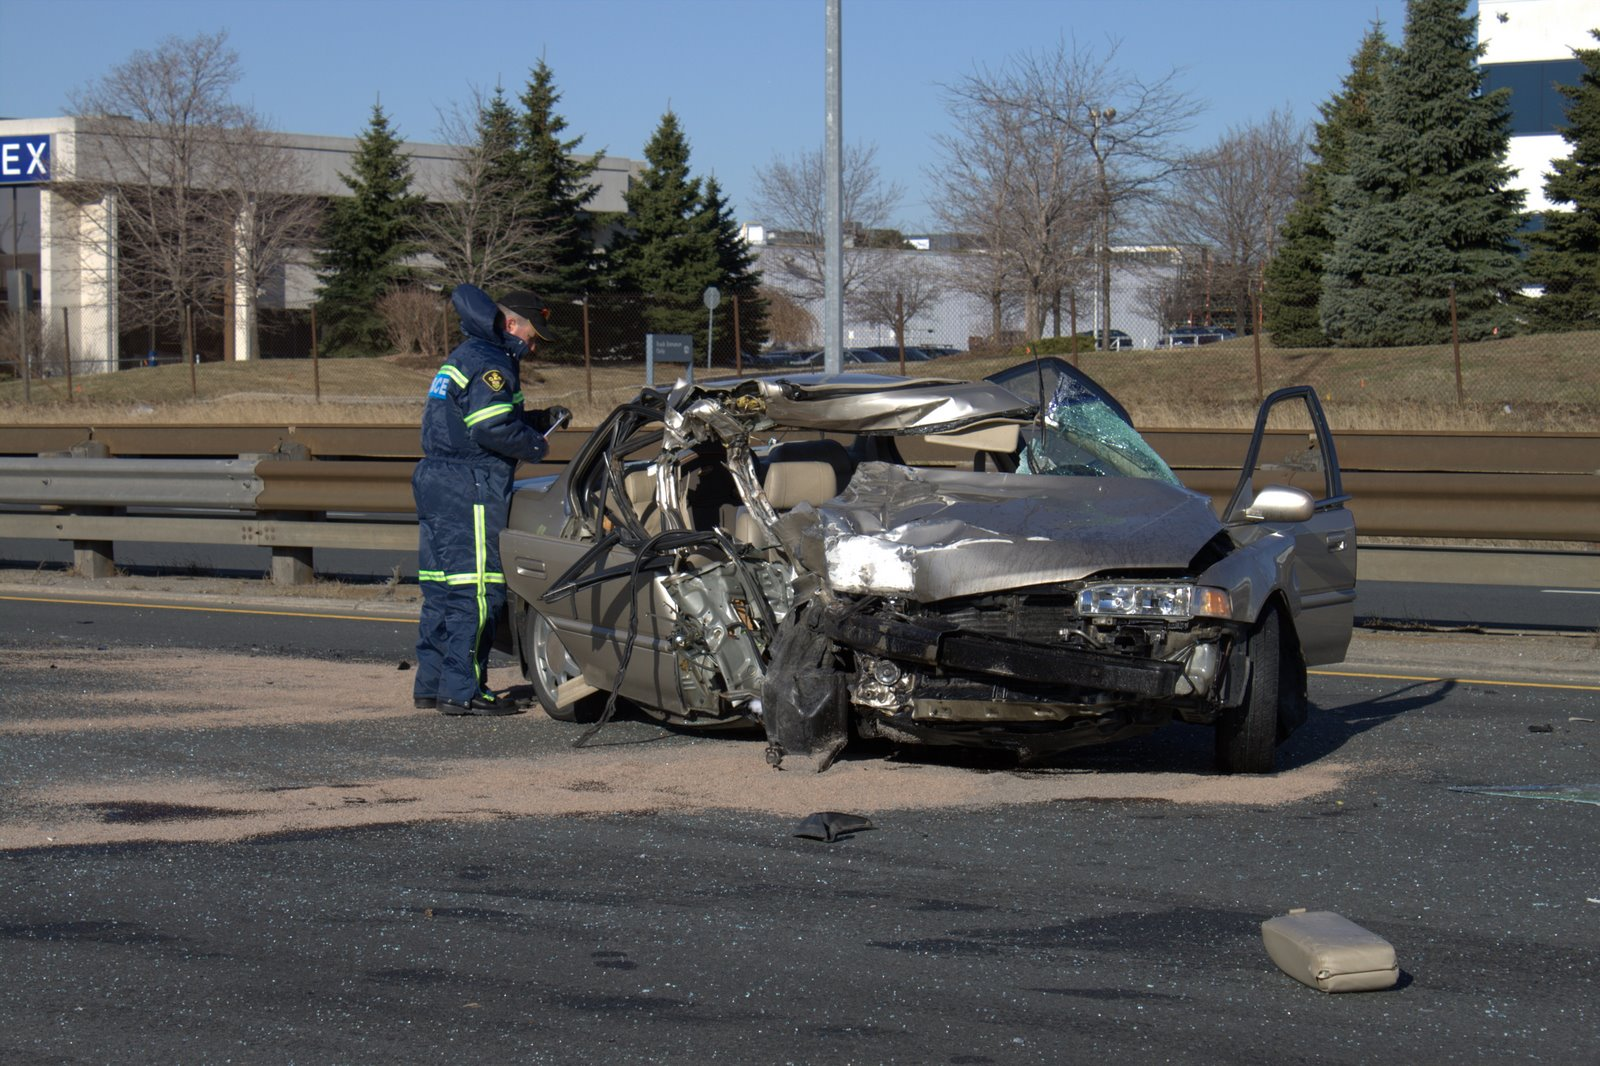 Car Wrecks Today: Car Accident: Car Accident Qew Today